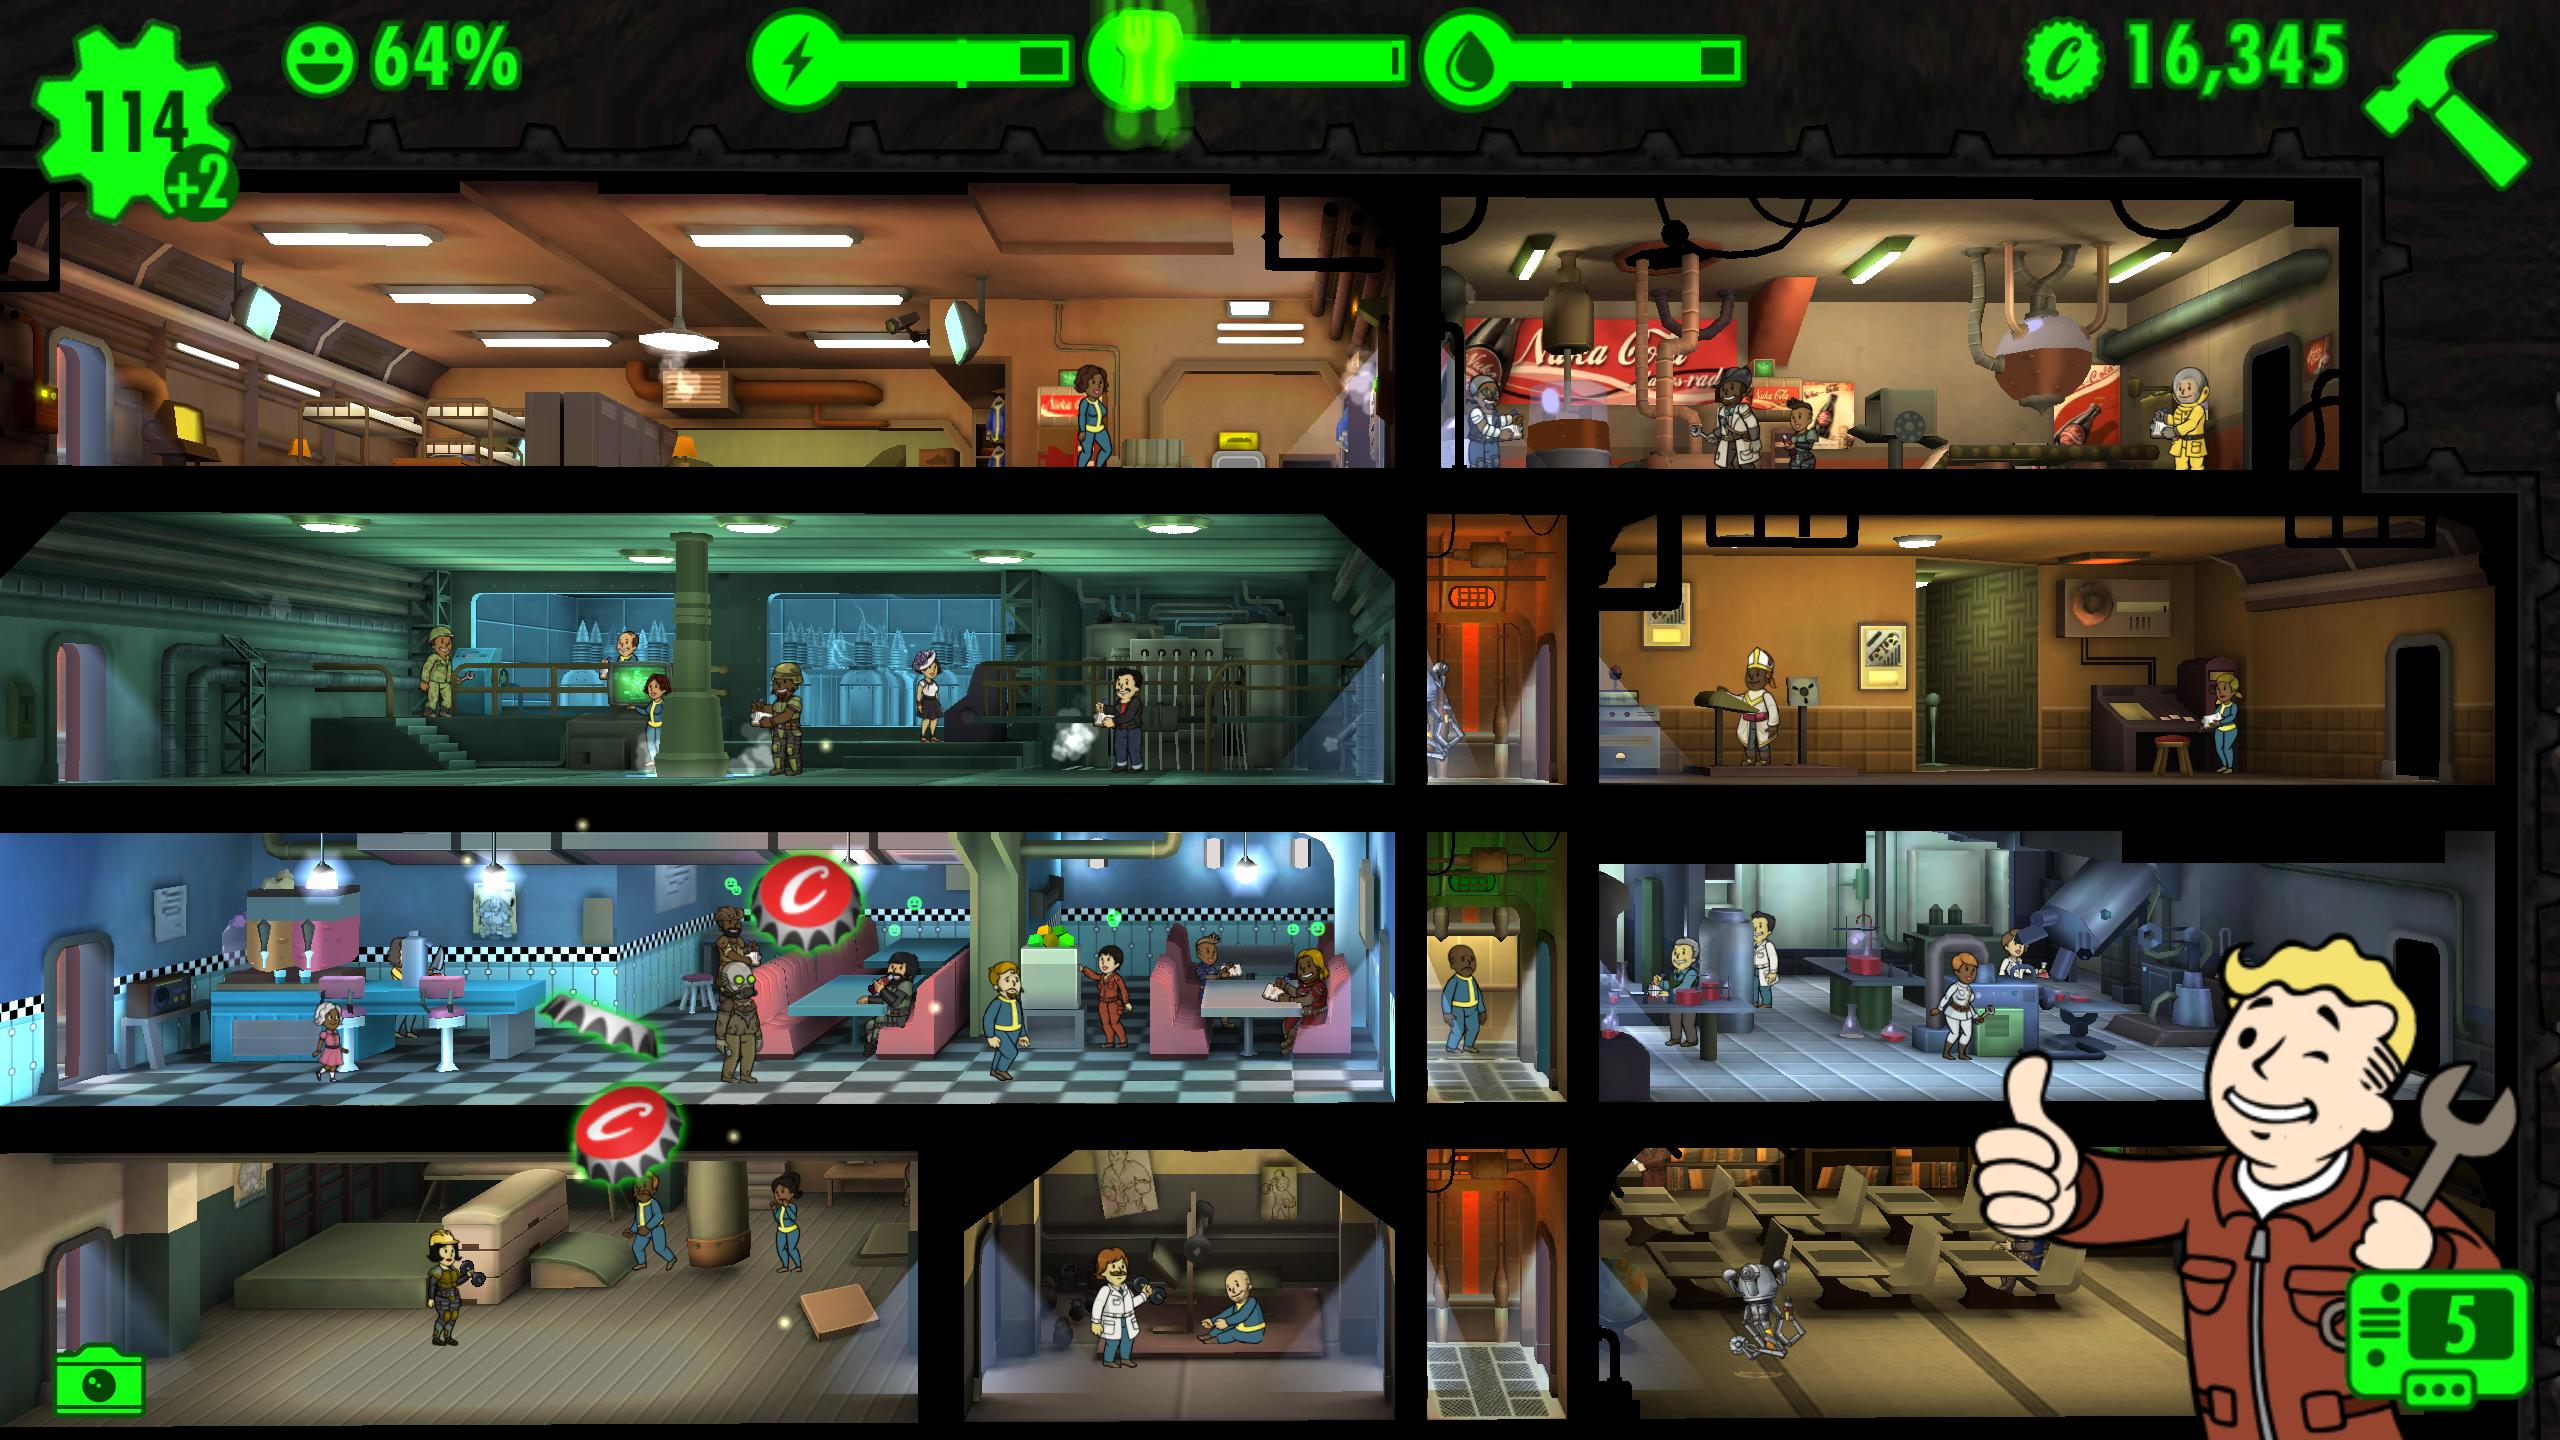 Fallout Vault 14 Roblox Fallout Shelter For Android Apk Download